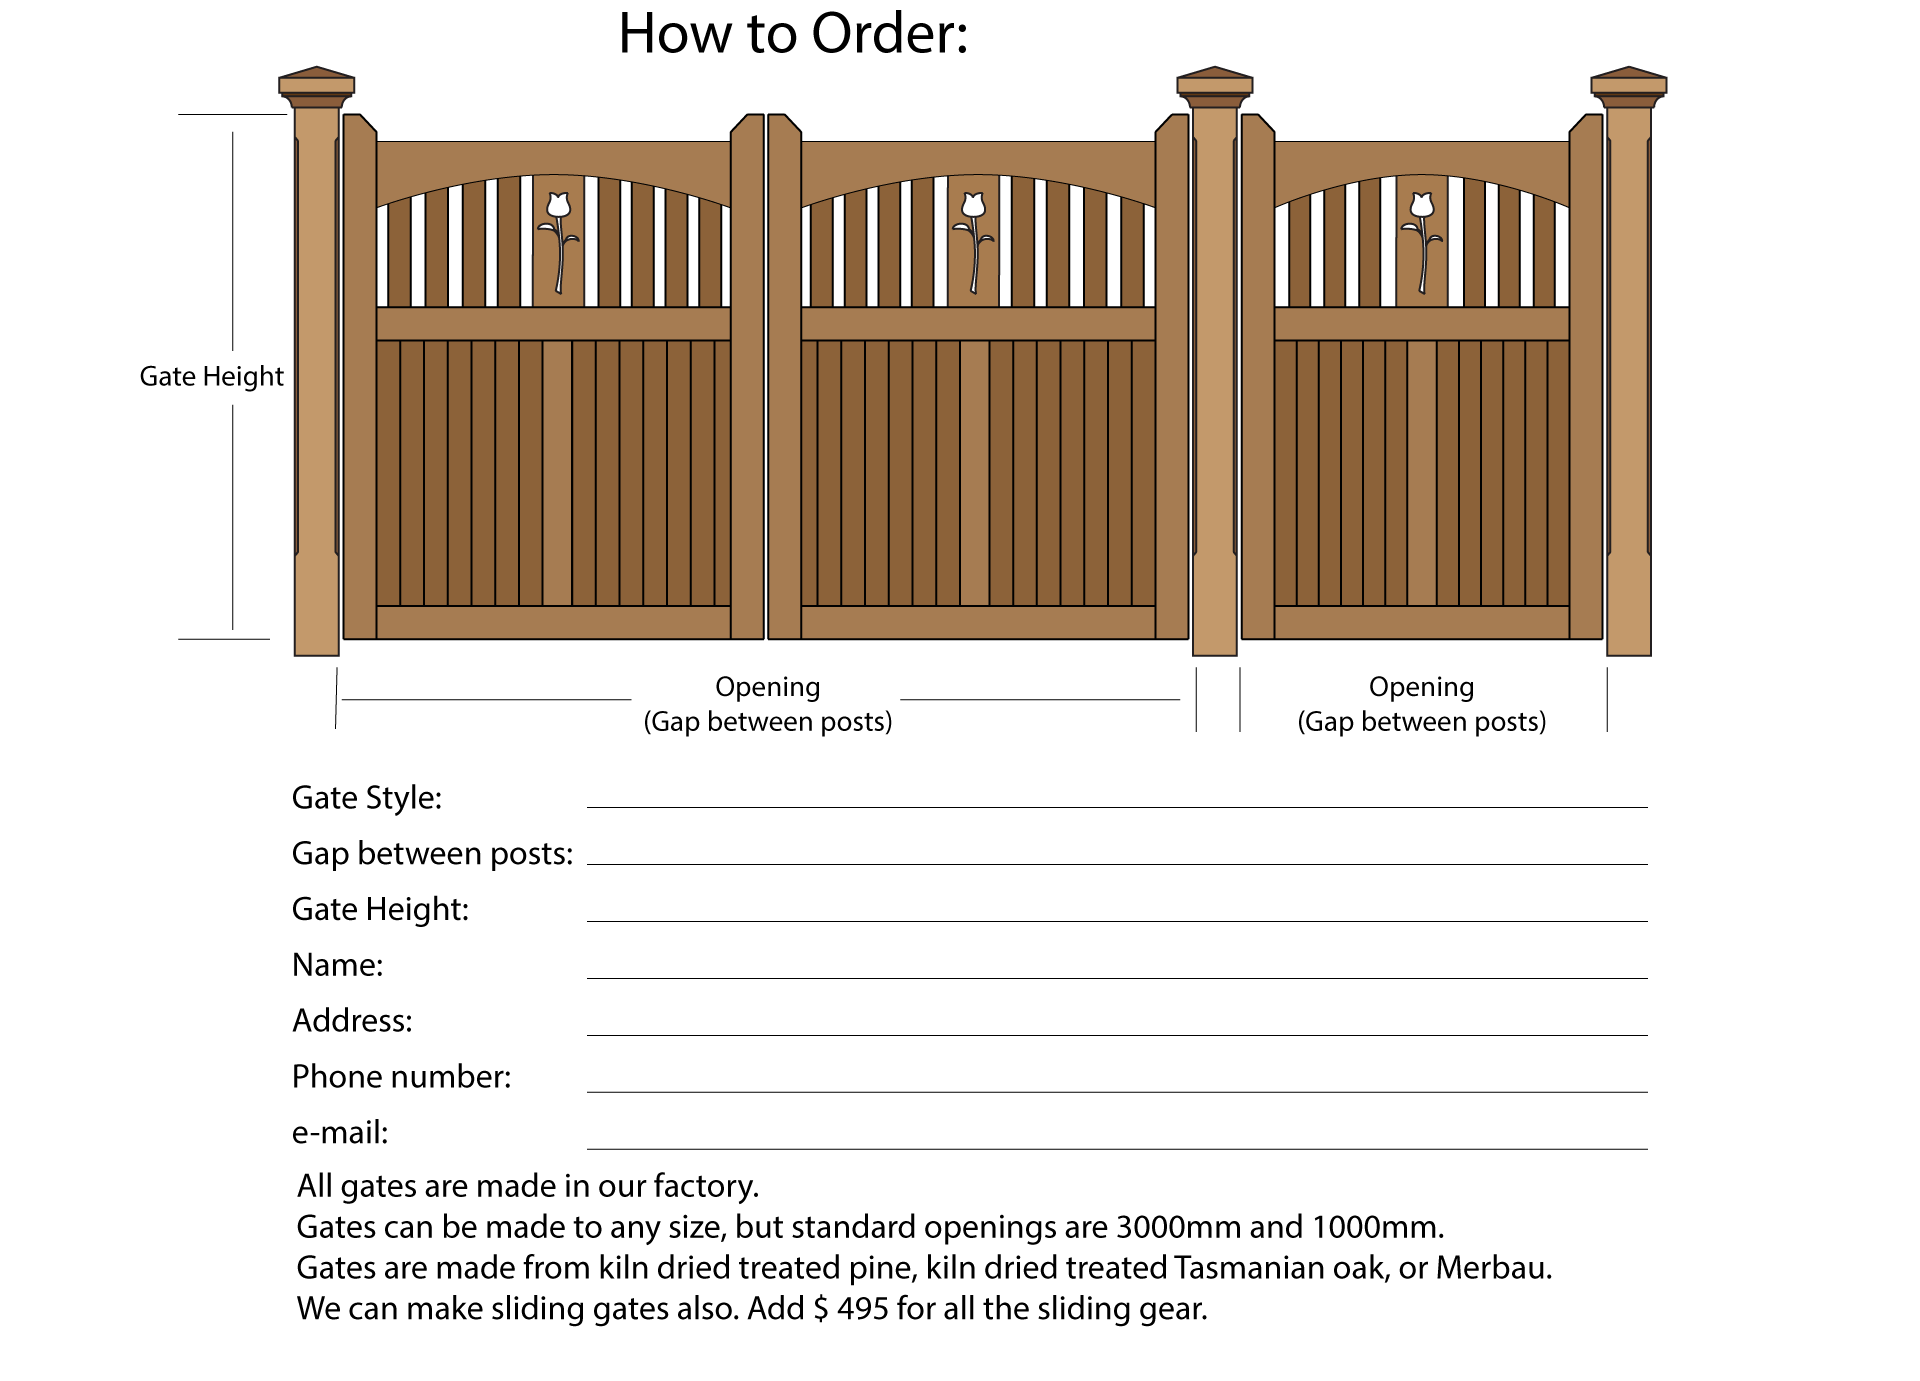 How to order wooden gates